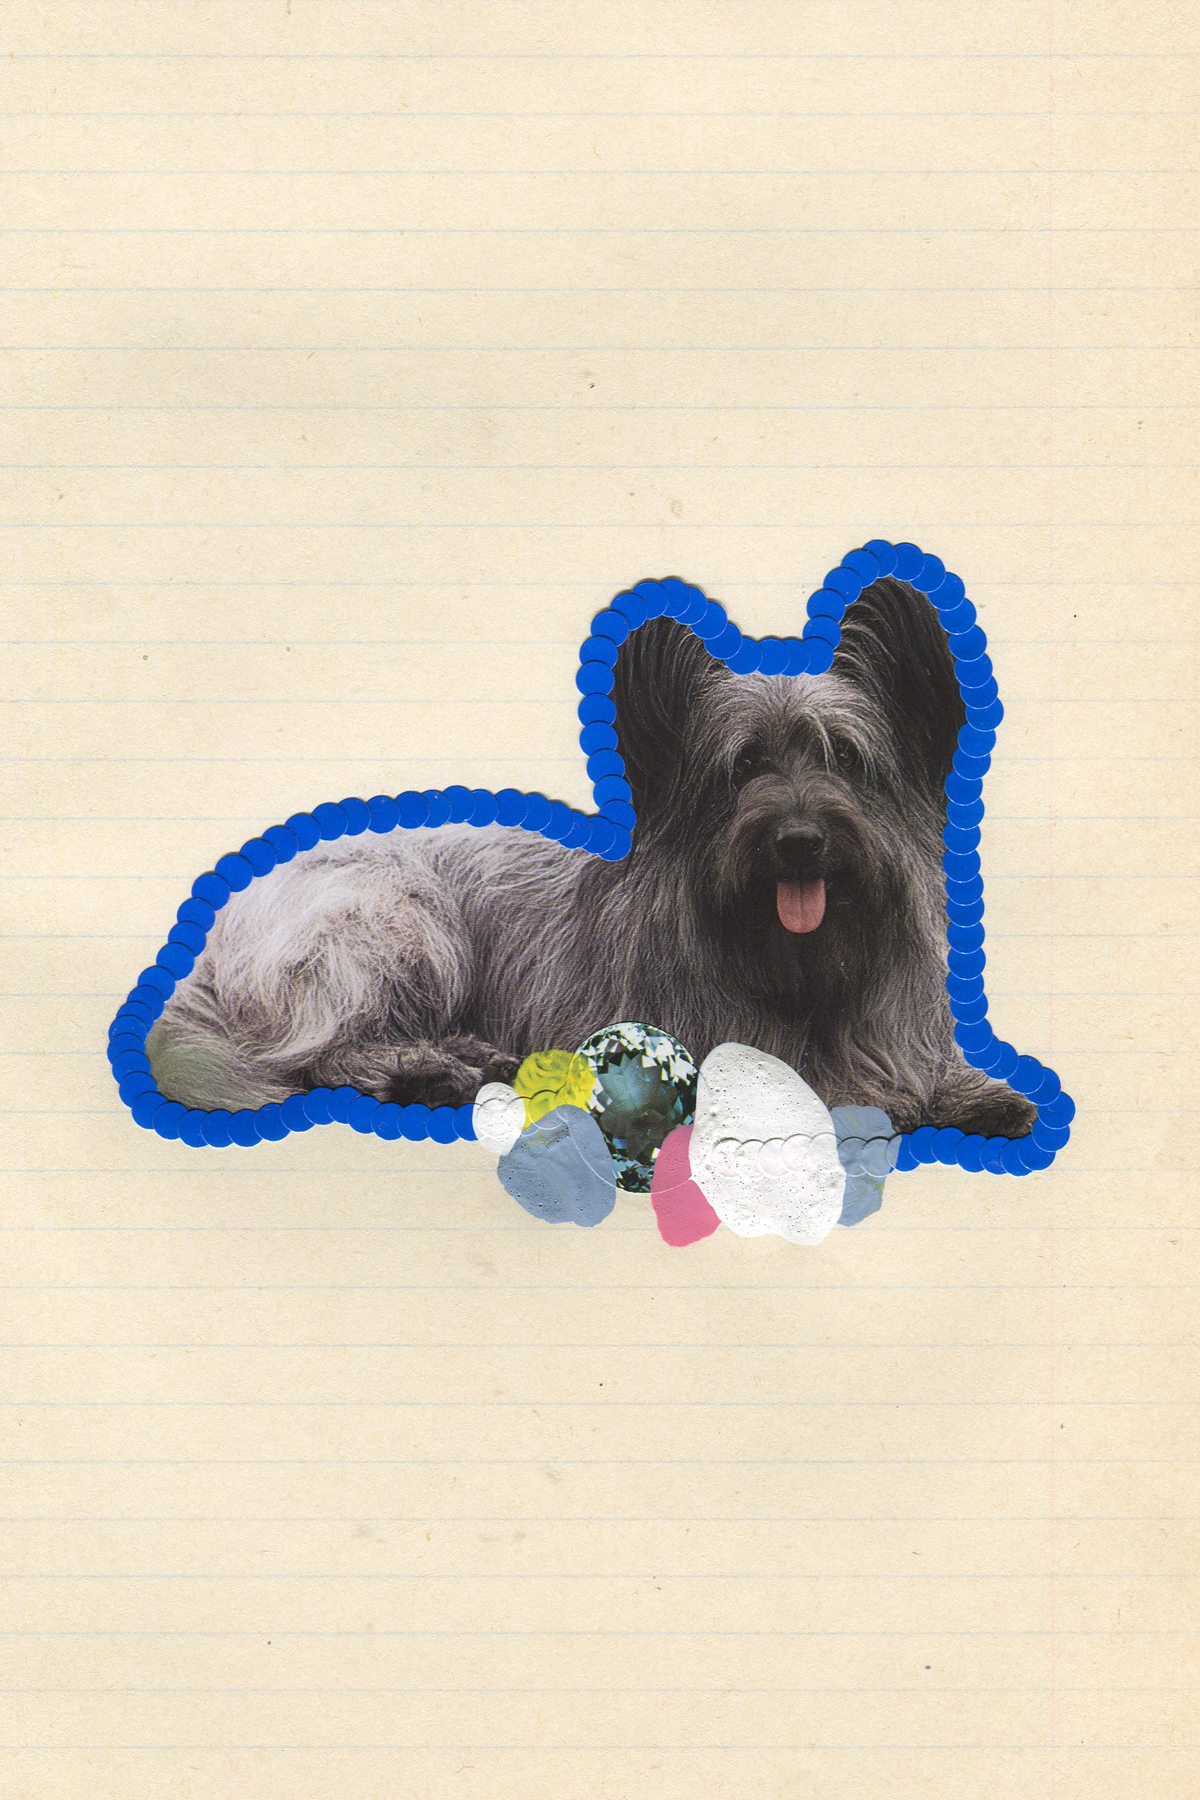 First Place Fluffy Puppy #3, 2017, collage, found paper, stickers, acrylic paint